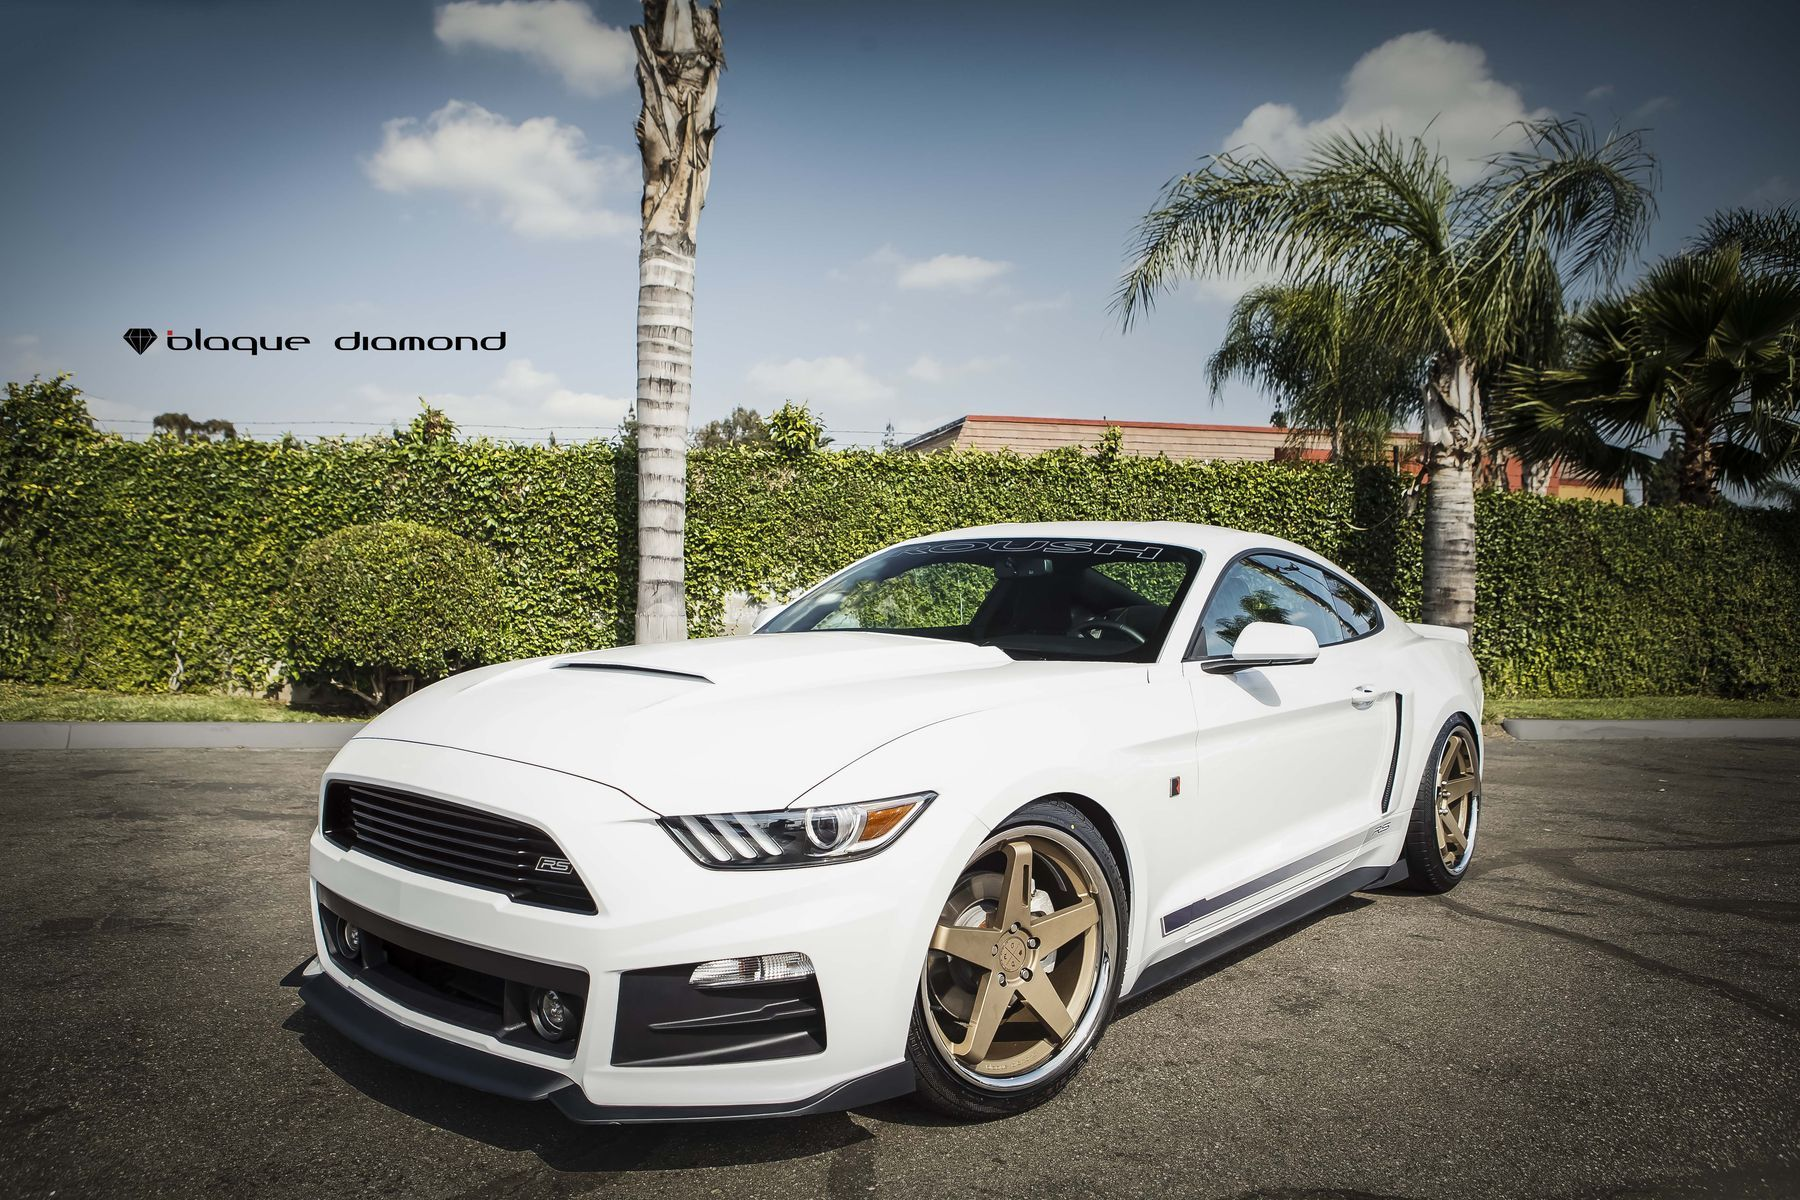 2015 Ford Mustang | 2015 Ford Mustang Roush Fitted With 20 Inch BD-21's in Bronze with Chrome SS Lip